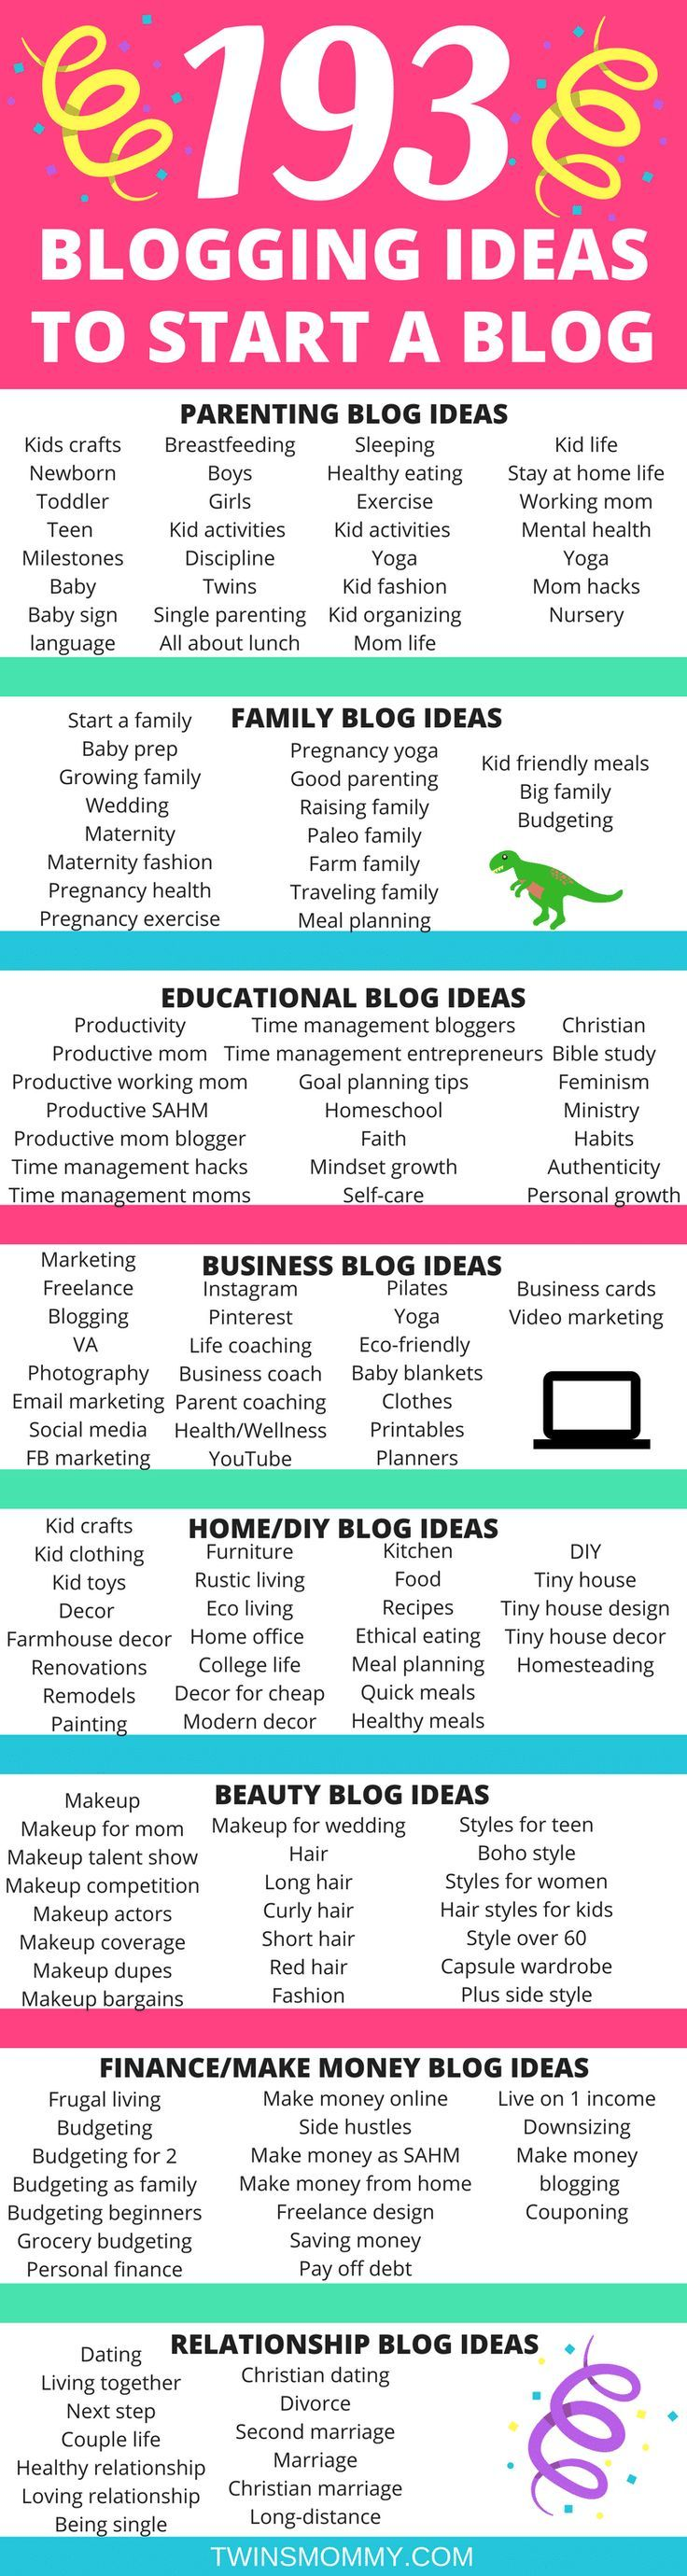 193 Blogging Ideas For Starting a Blog | Blog topics, Blogging and Blog